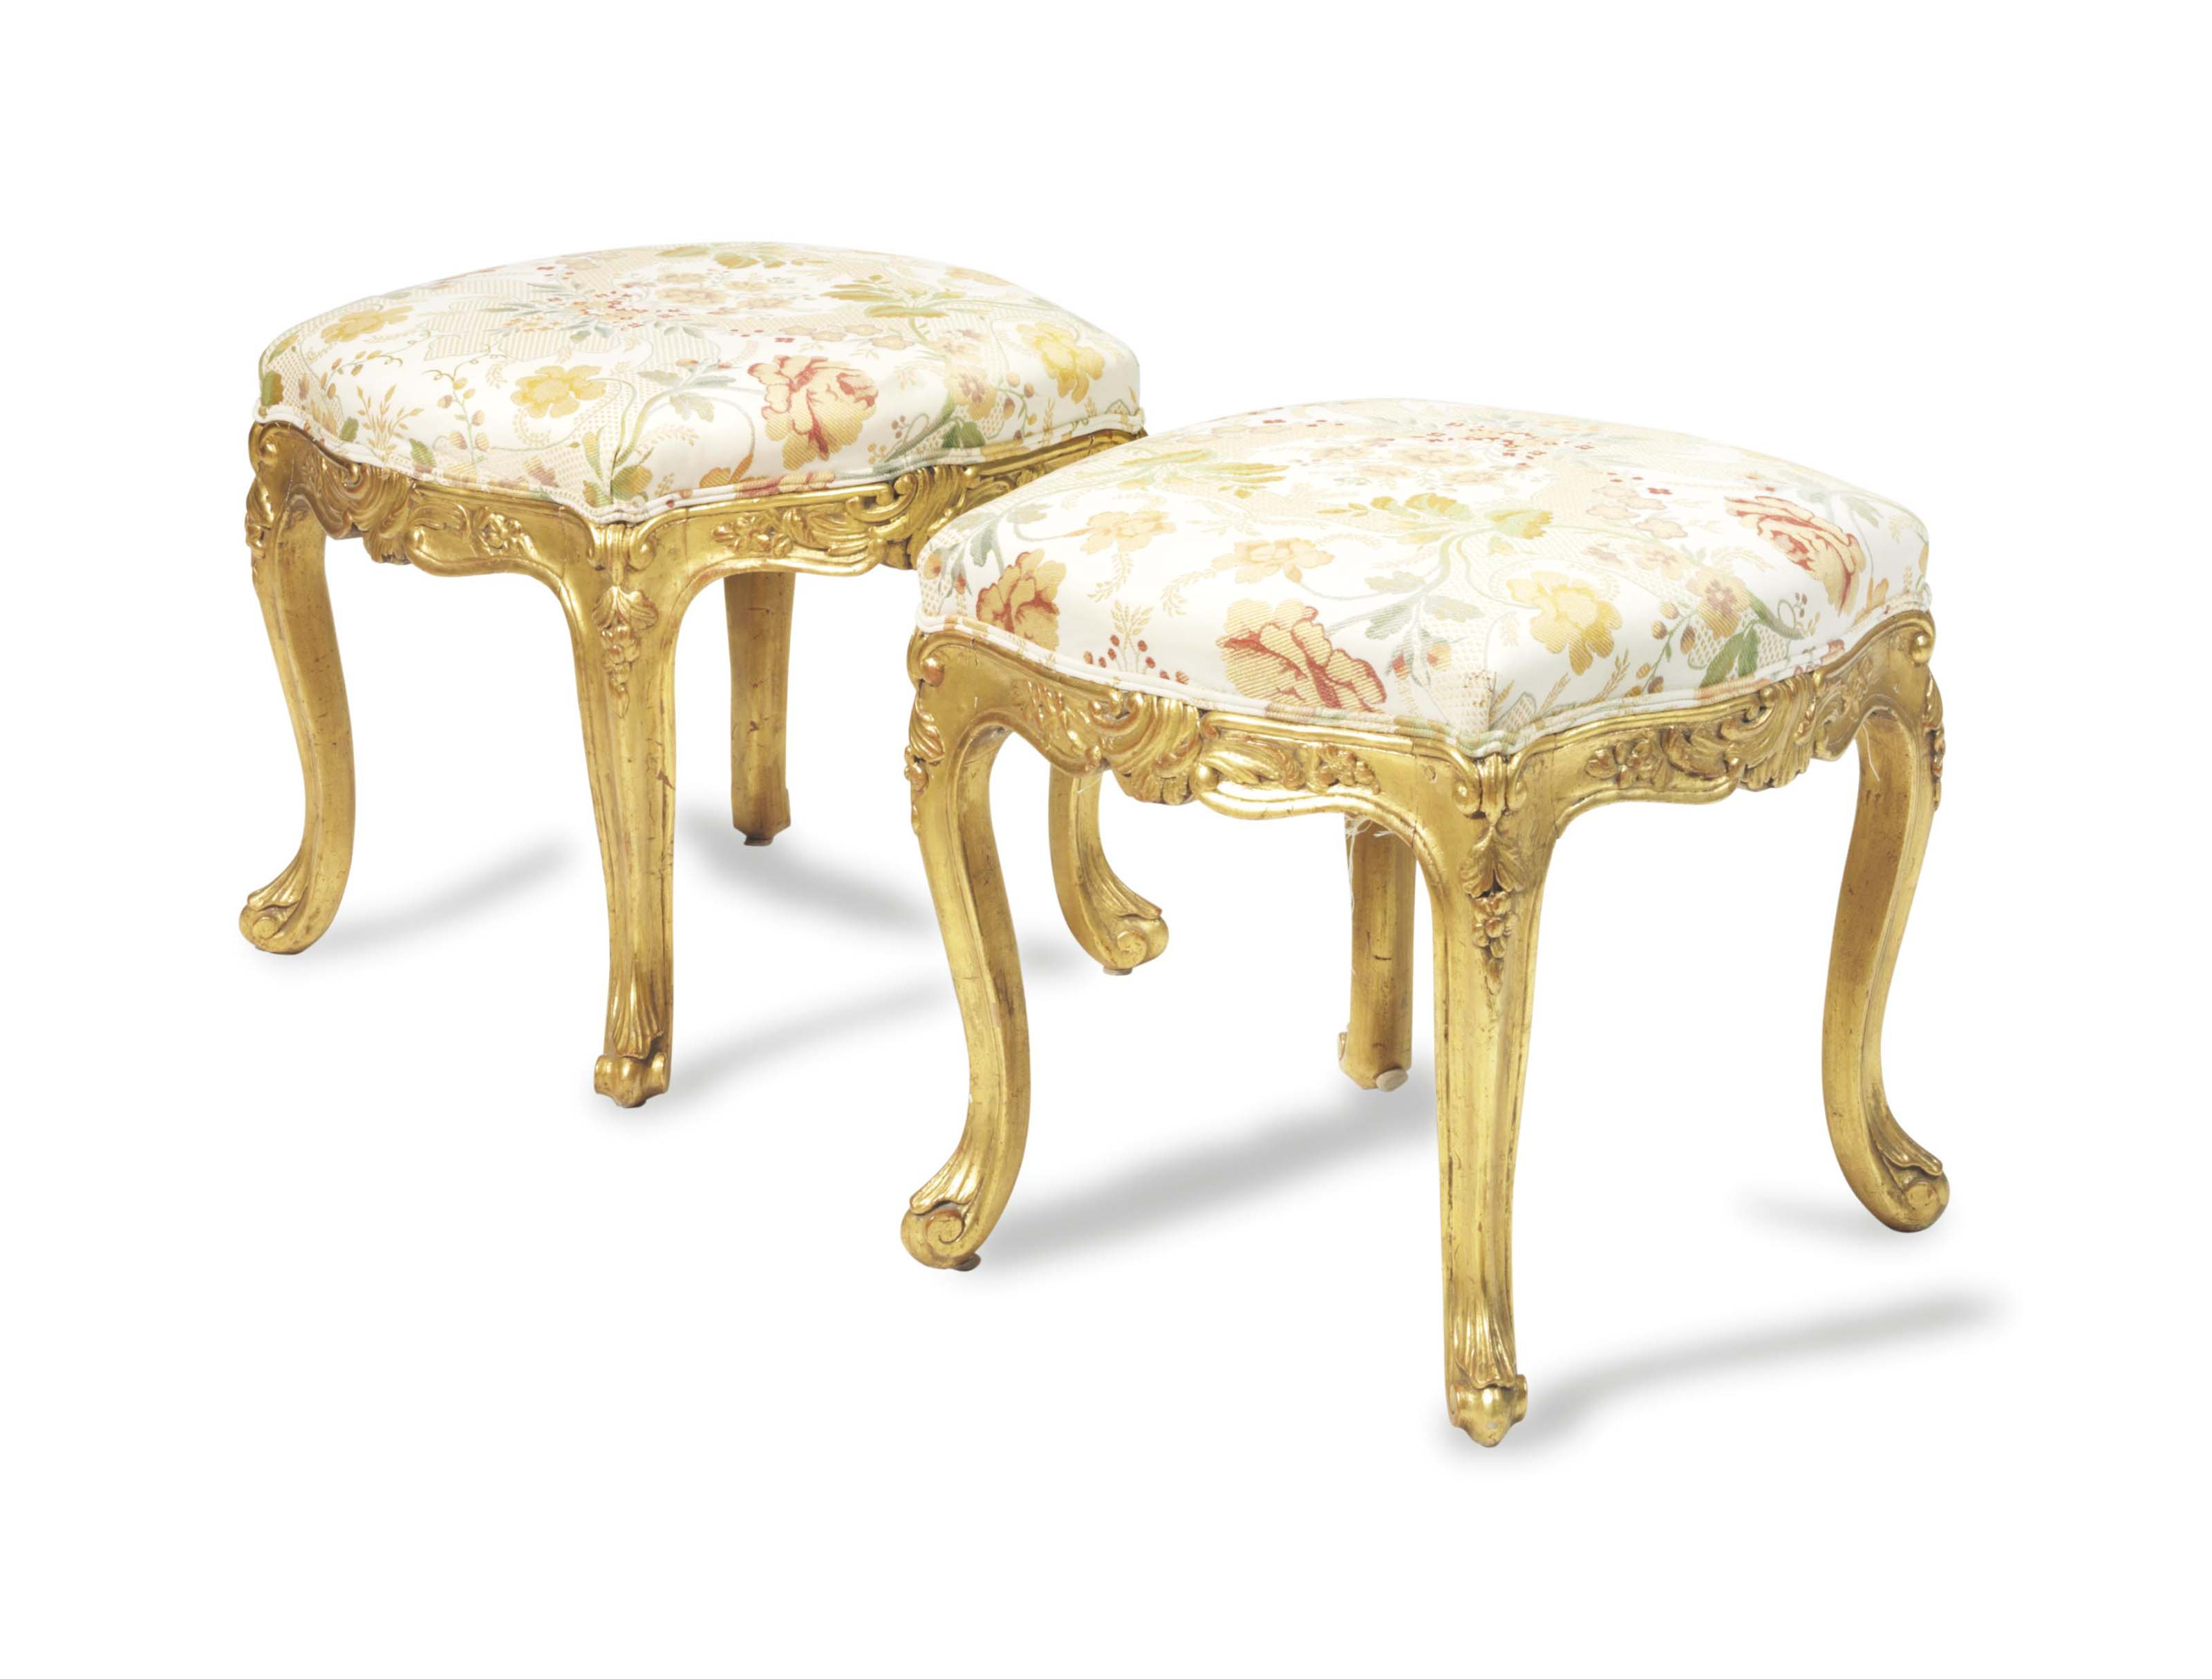 A PAIR OF FRENCH GILTWOOD TABOURETS,